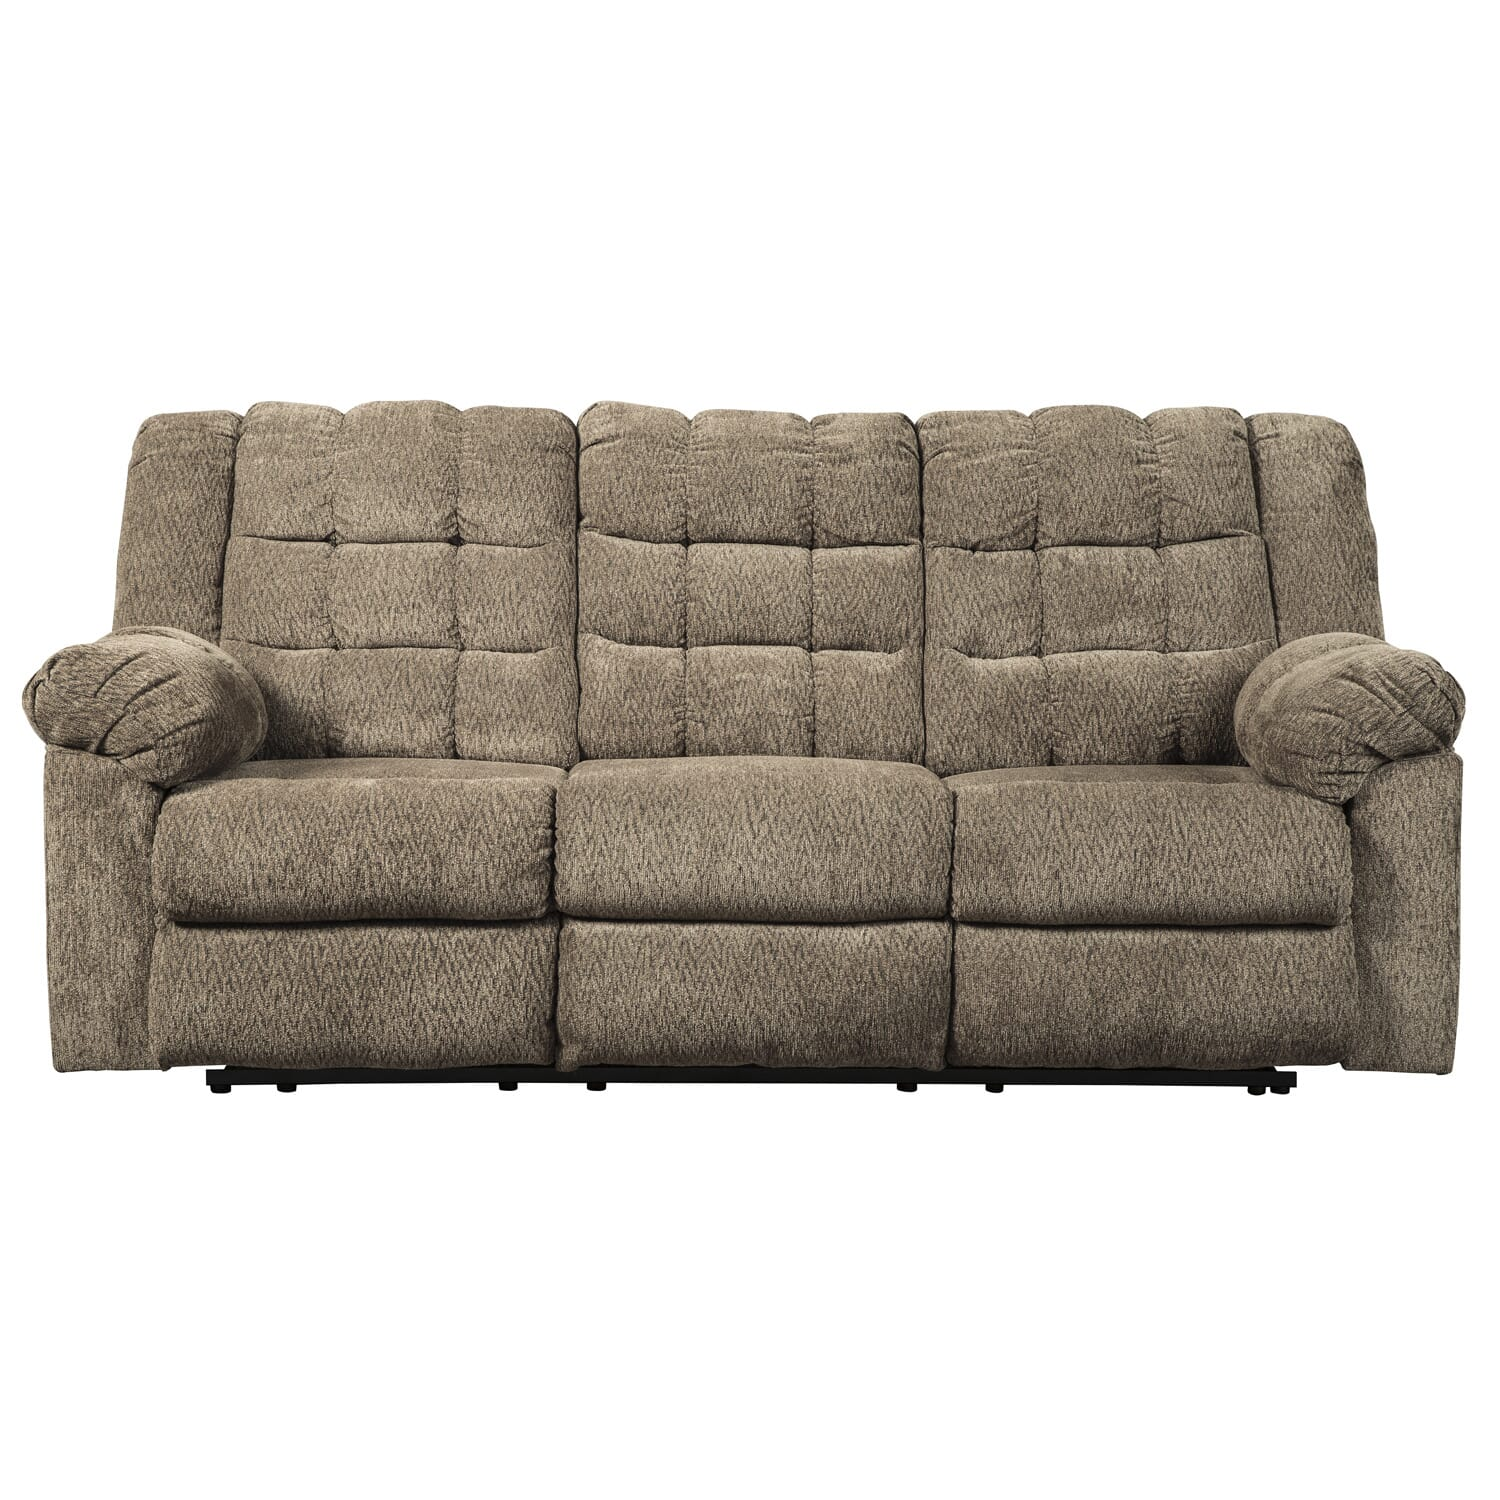 Prime Miron Dual Reclining Sofa Andrewgaddart Wooden Chair Designs For Living Room Andrewgaddartcom